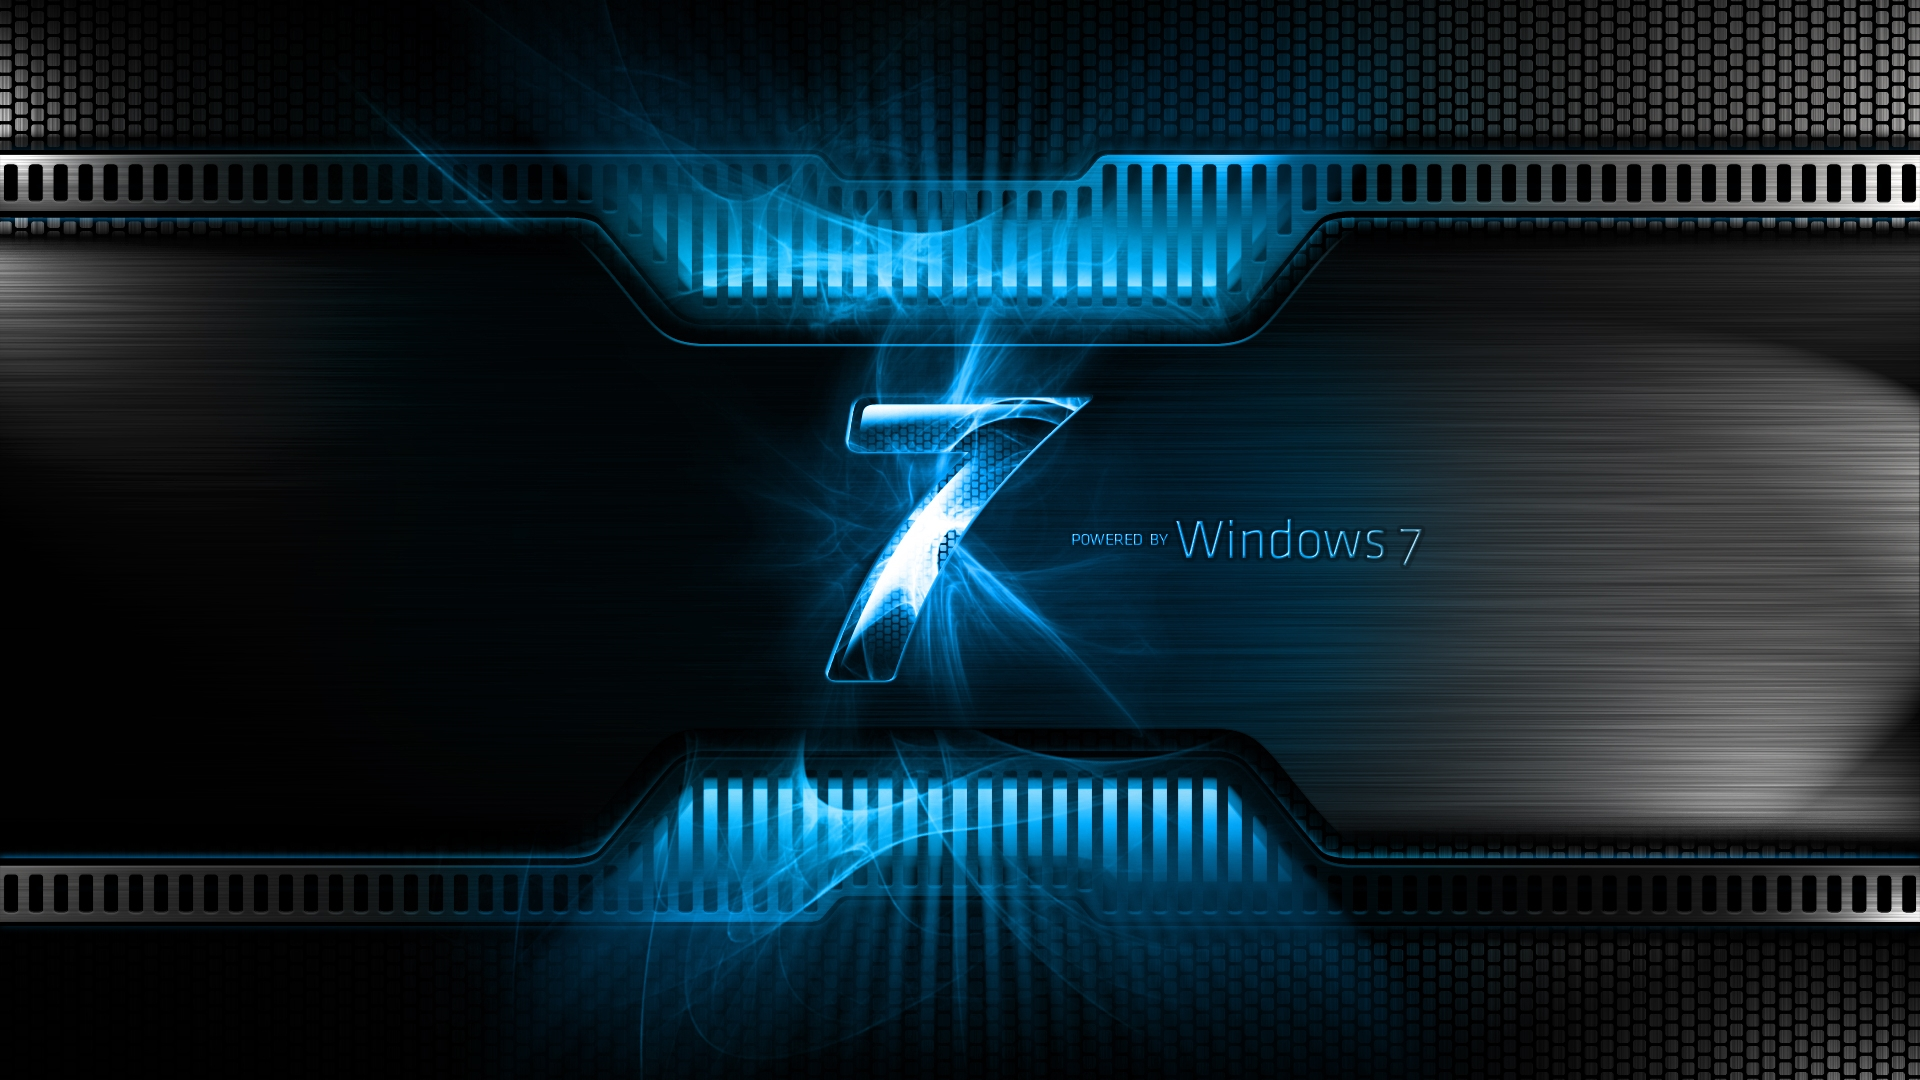 Download Wallpaper 1920x1080 windows 7, ultimate, blue, drops Full ...